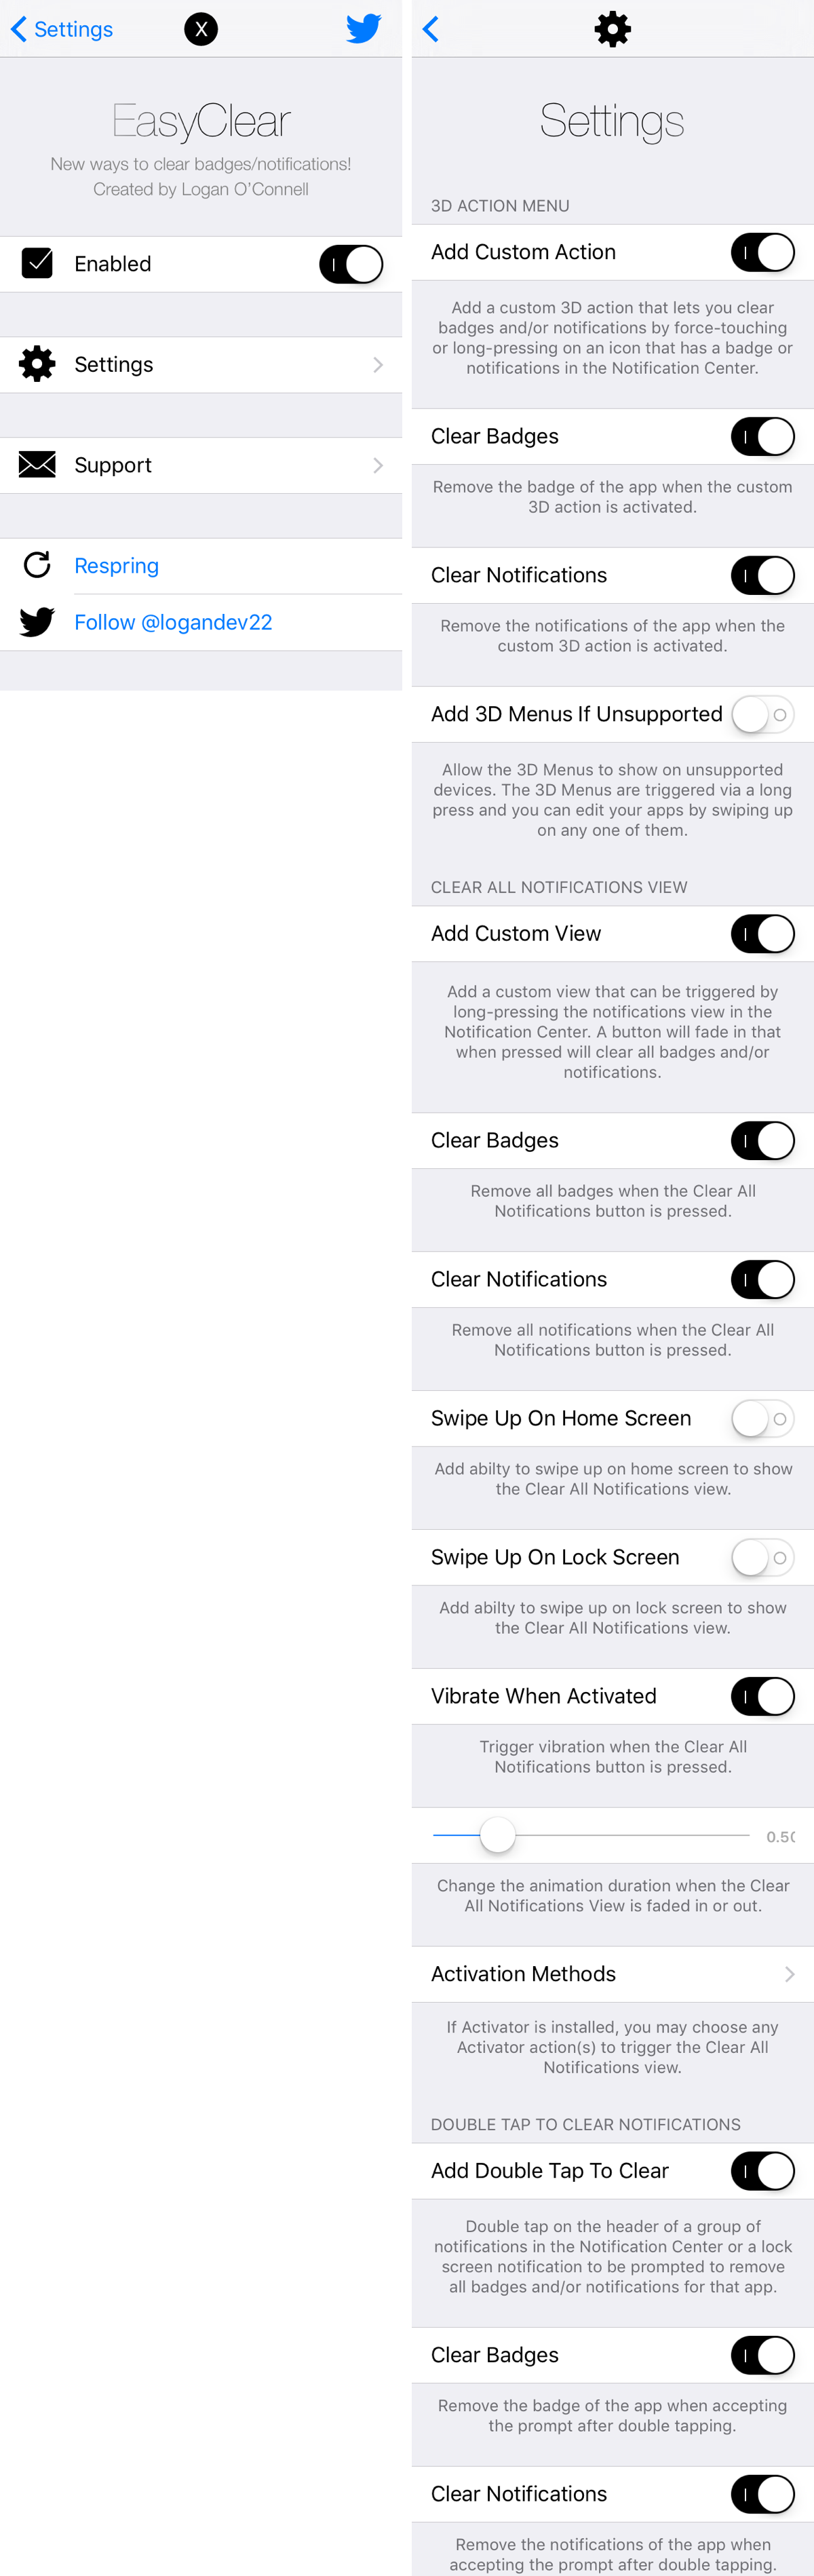 easyclear preferences pane settings Cydia : se débarrasser facilement des notifications intempestives